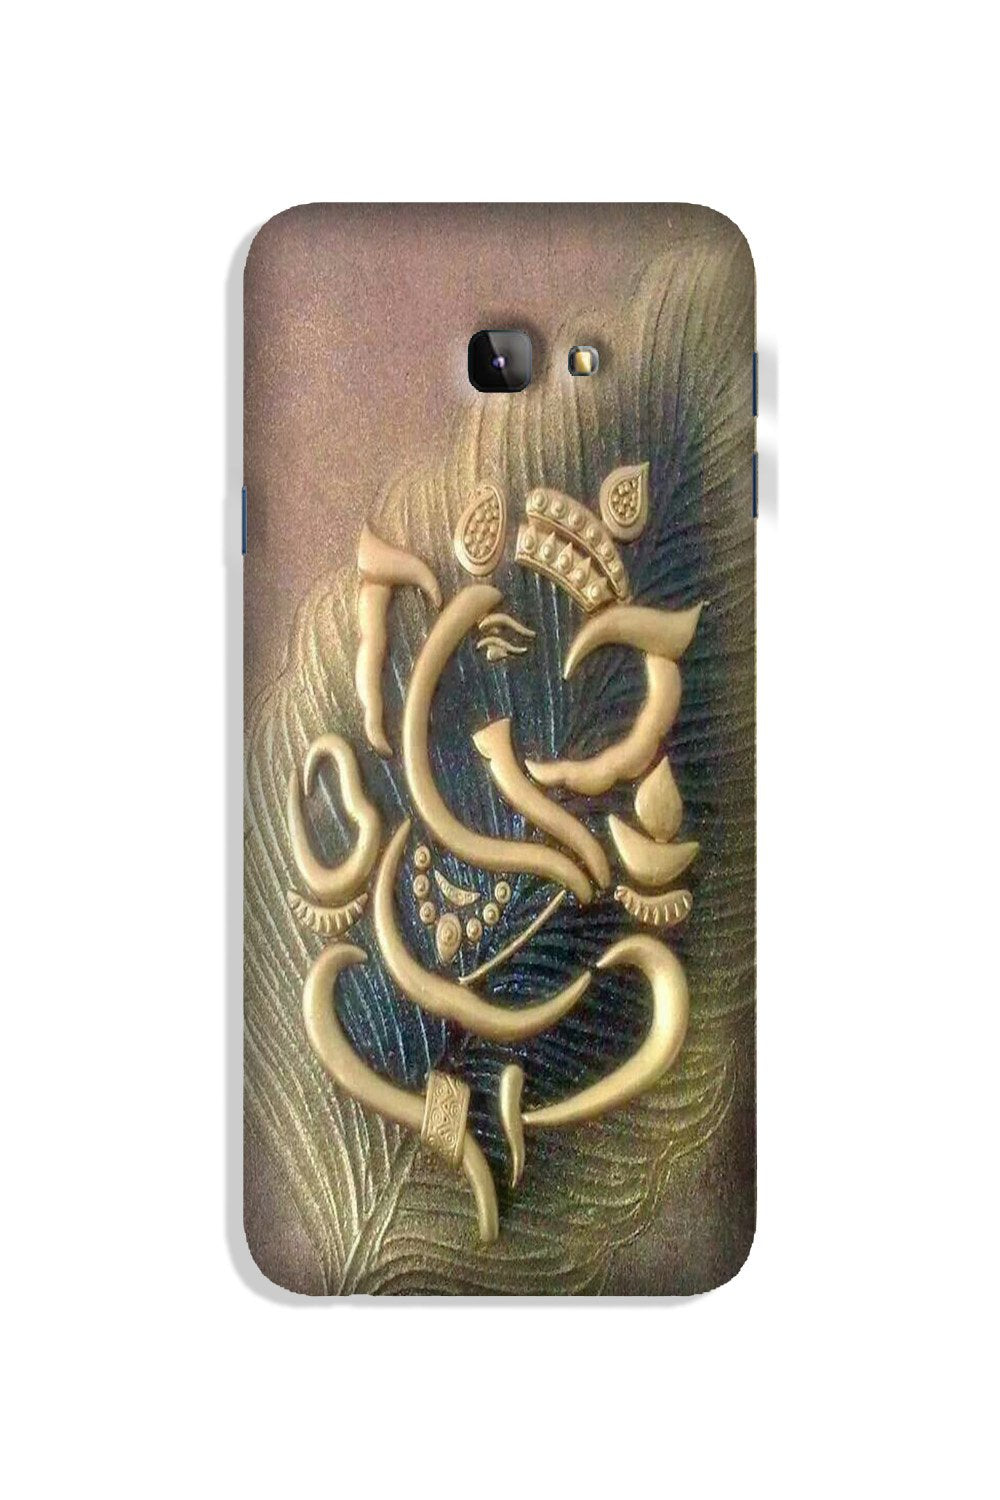 Lord Ganesha Case for Galaxy J4 Plus